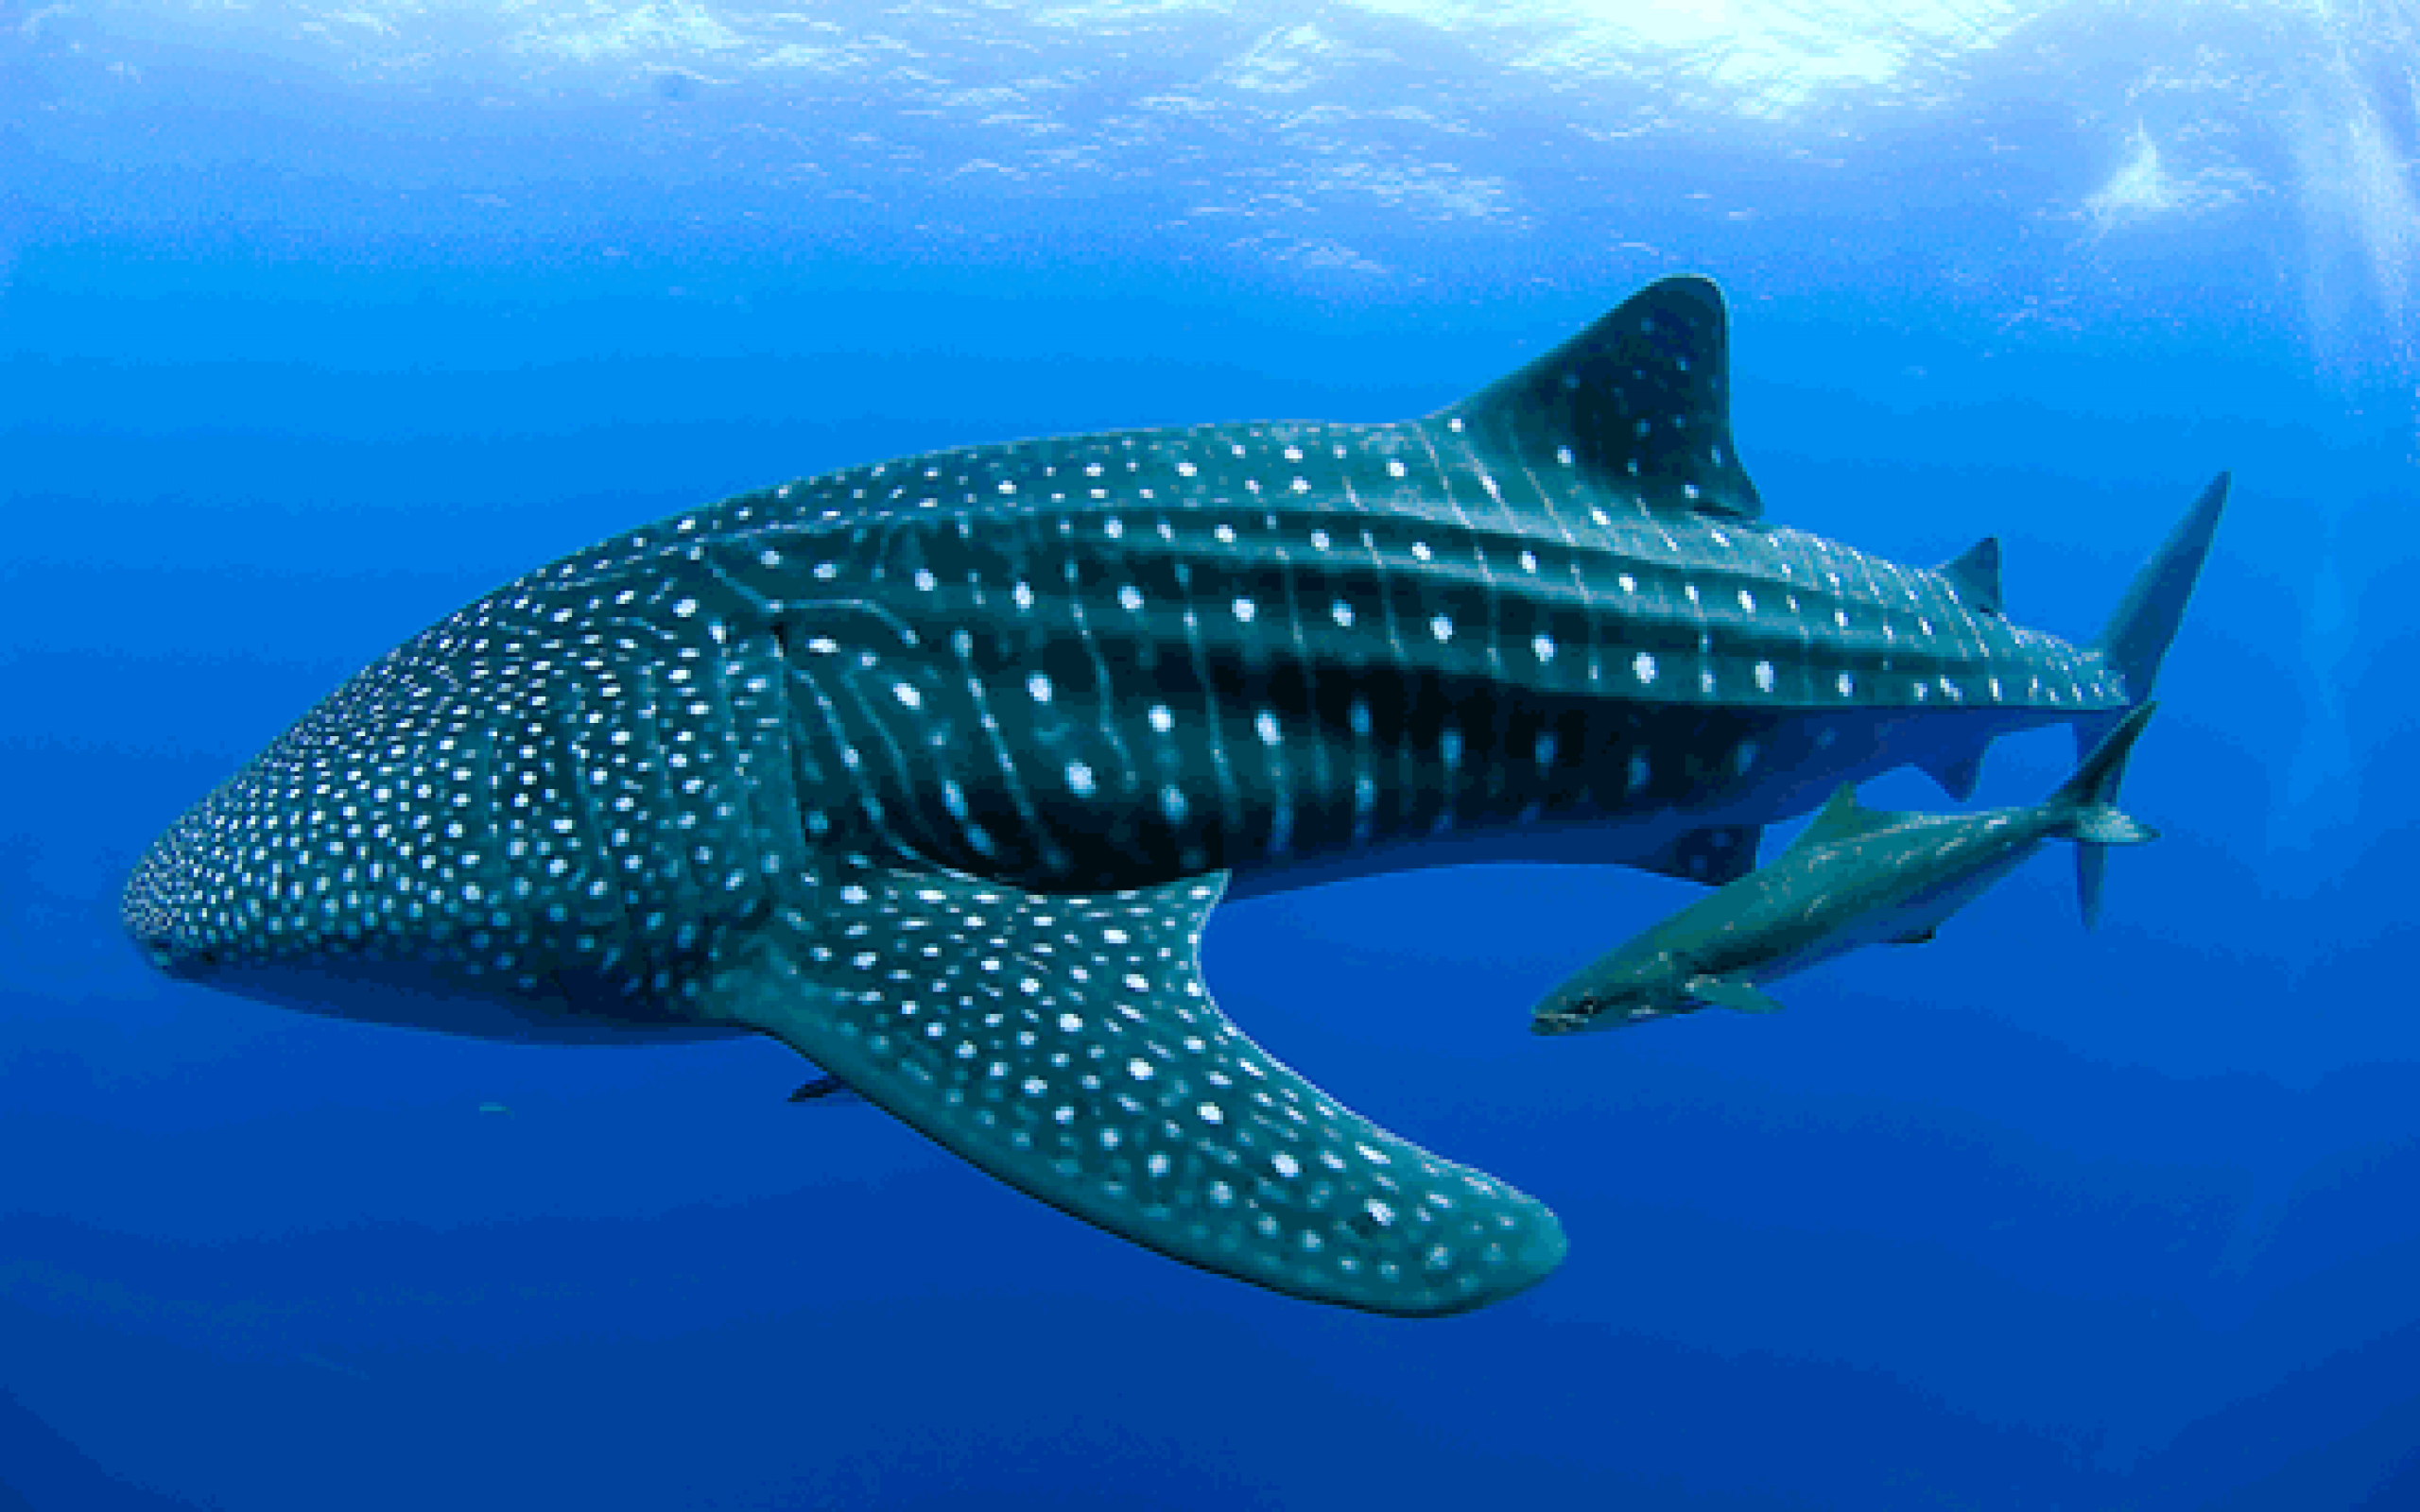 Floating Whale shark photo and wallpaper. Cute Floating ...